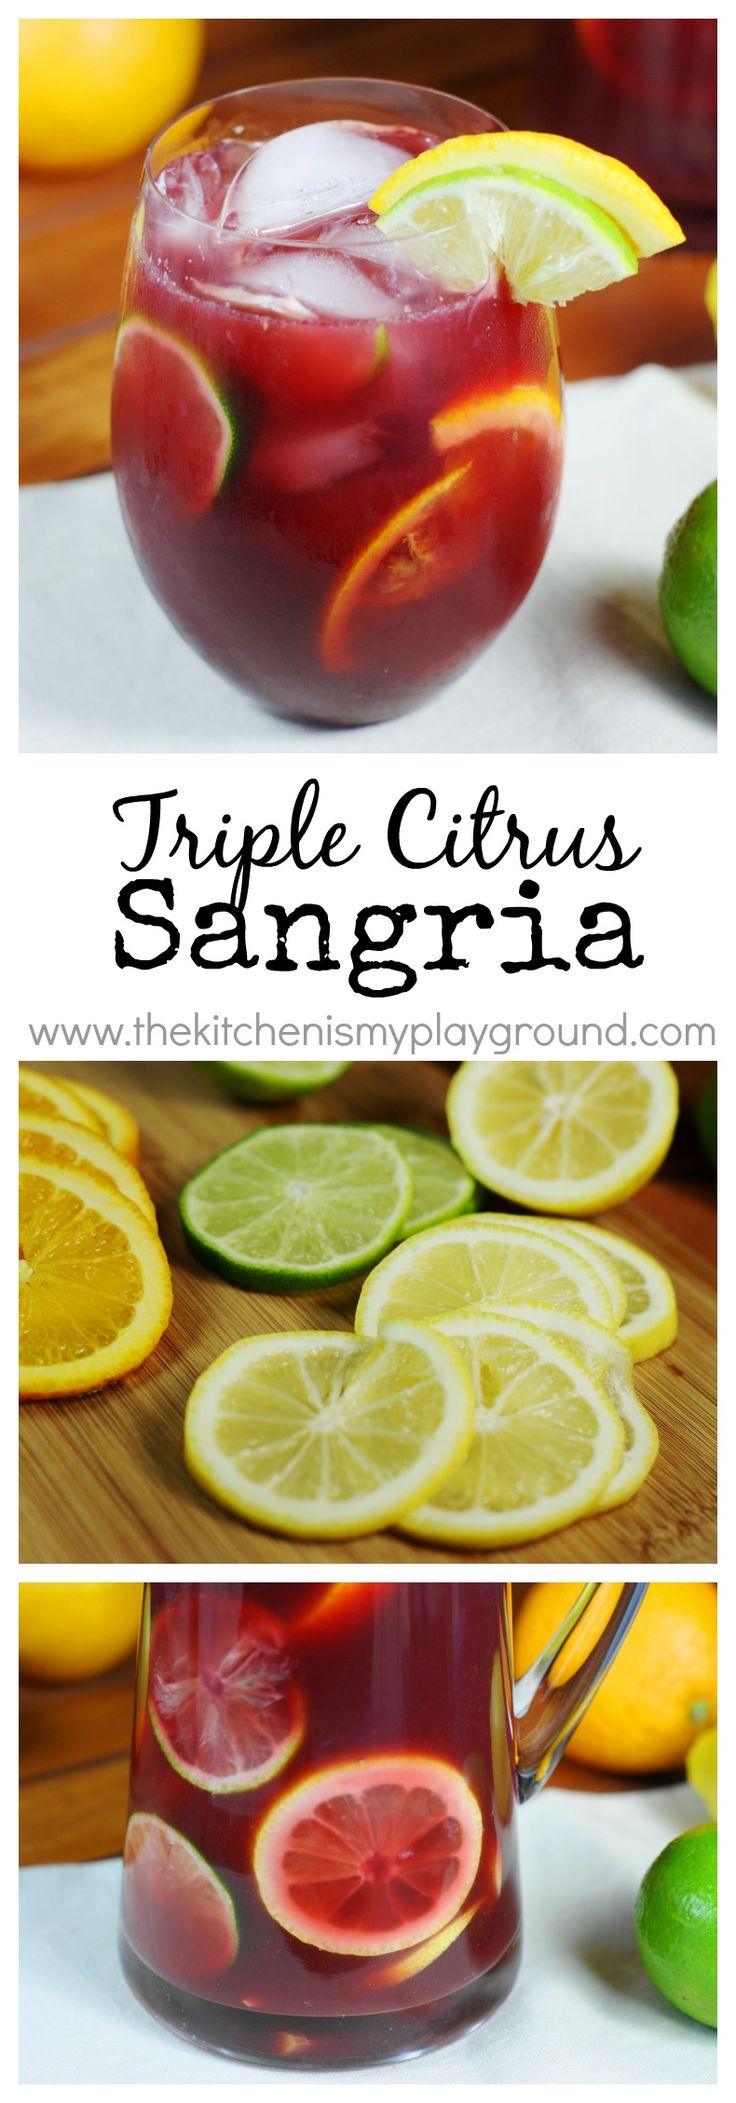 Triple Citrus Sangria ~ with fresh lemon, lime, and orange. Both beautiful AND delicious! www.thekitchenismyplayground.com